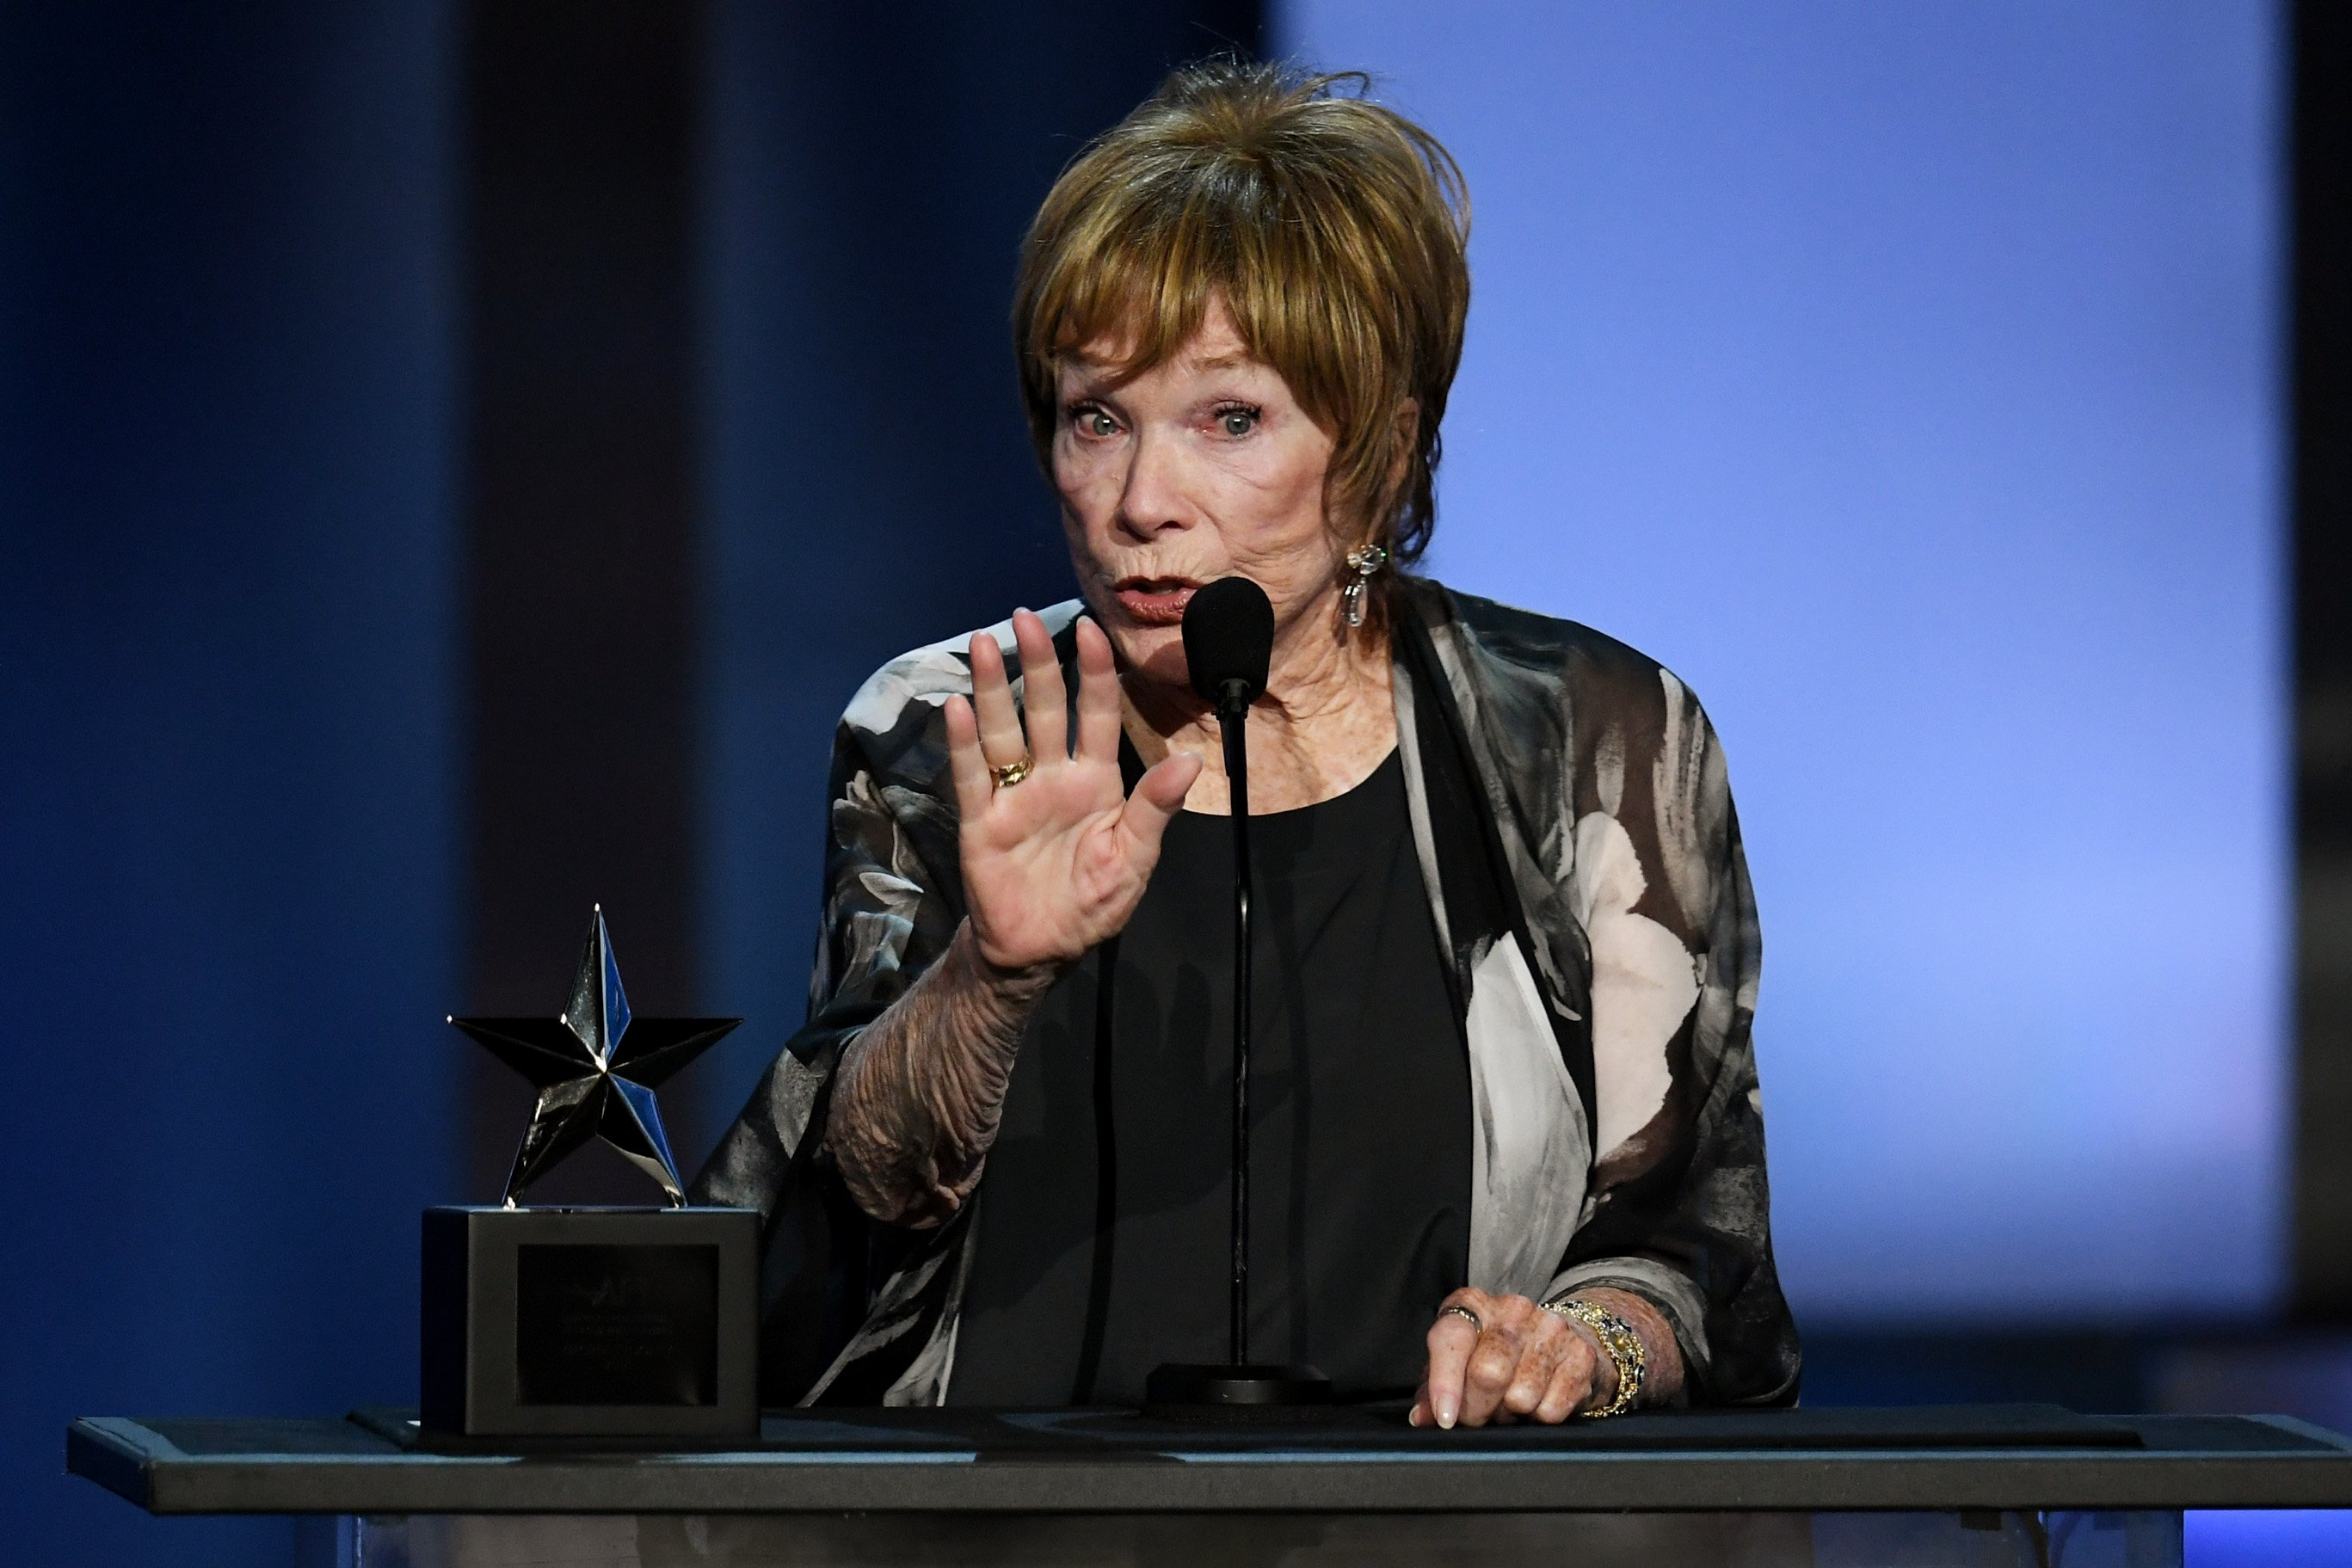 Shirley MacLaine during the American Film Institute's 46th Life Achievement Award Gala on June 7, 2018 | Photo: GettyImages